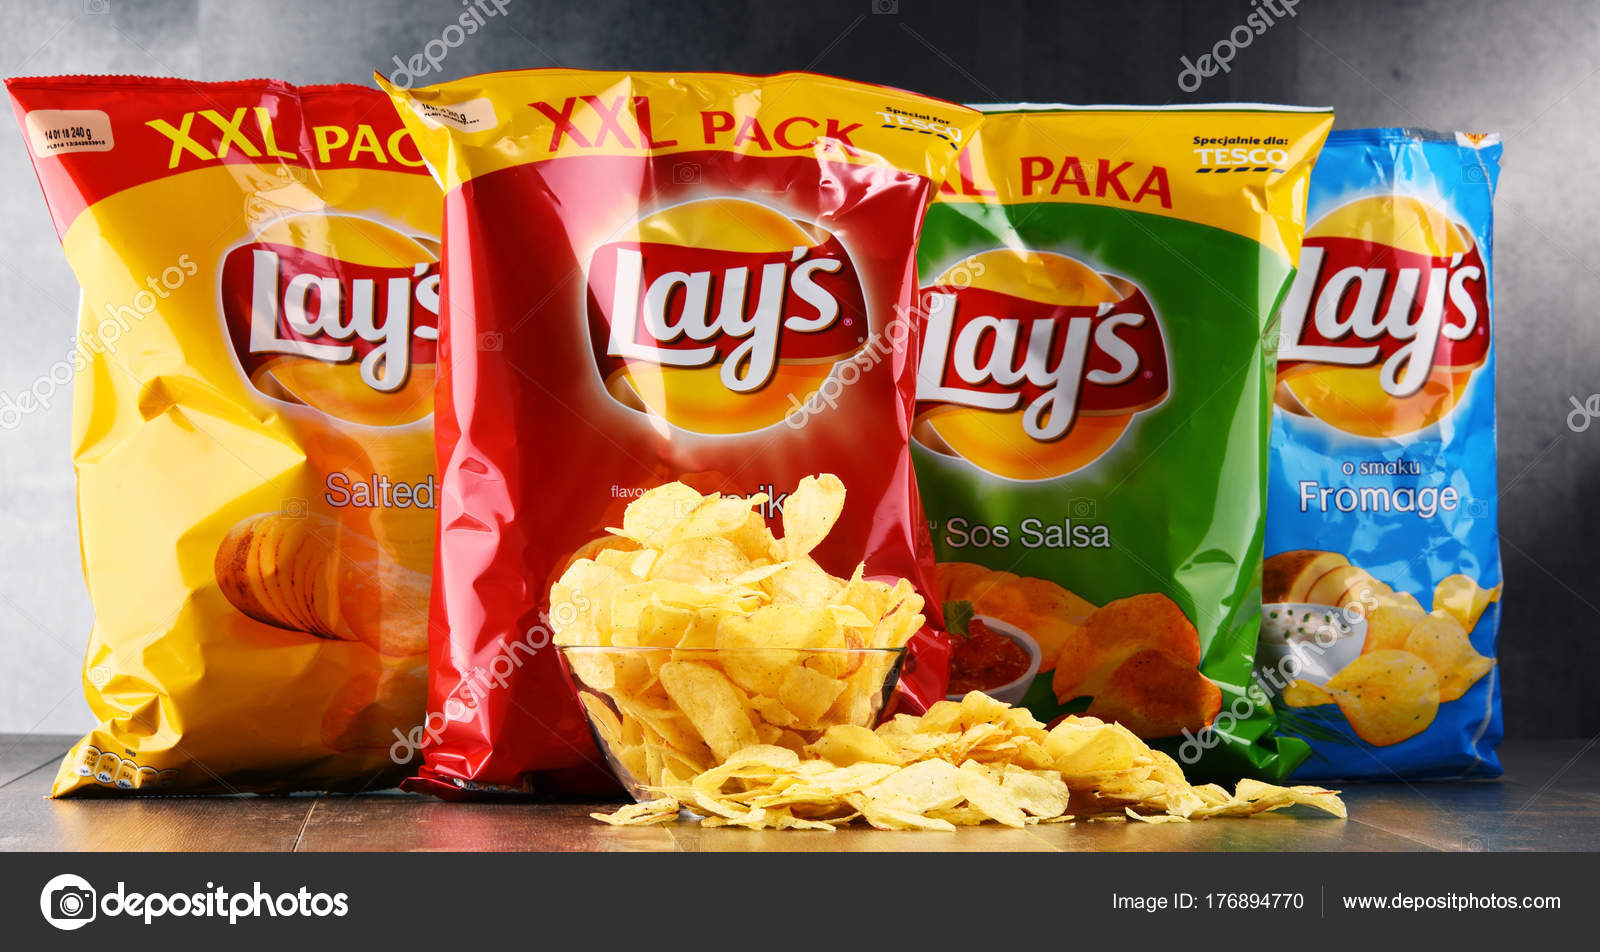 packets of lays potato